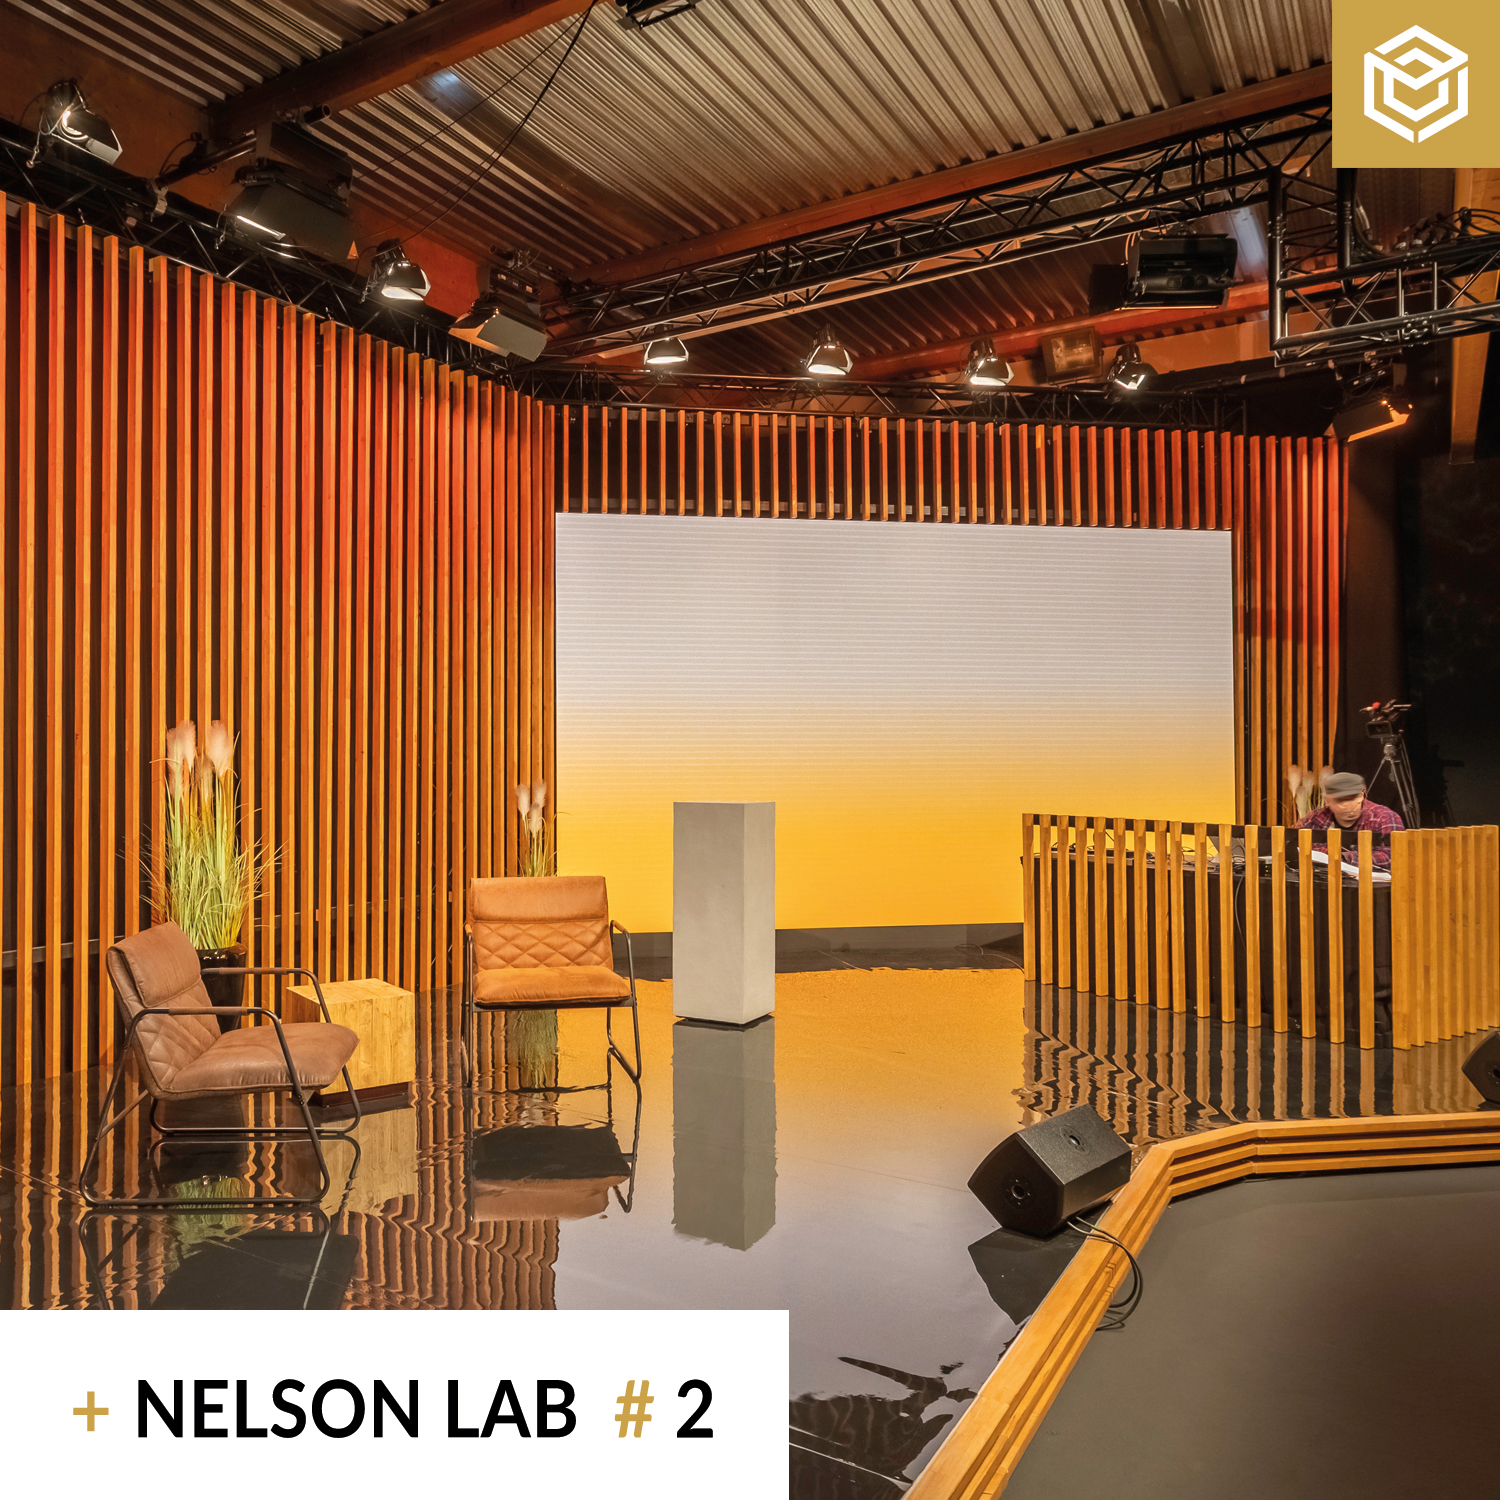 Streaming Studio Nelson Lab